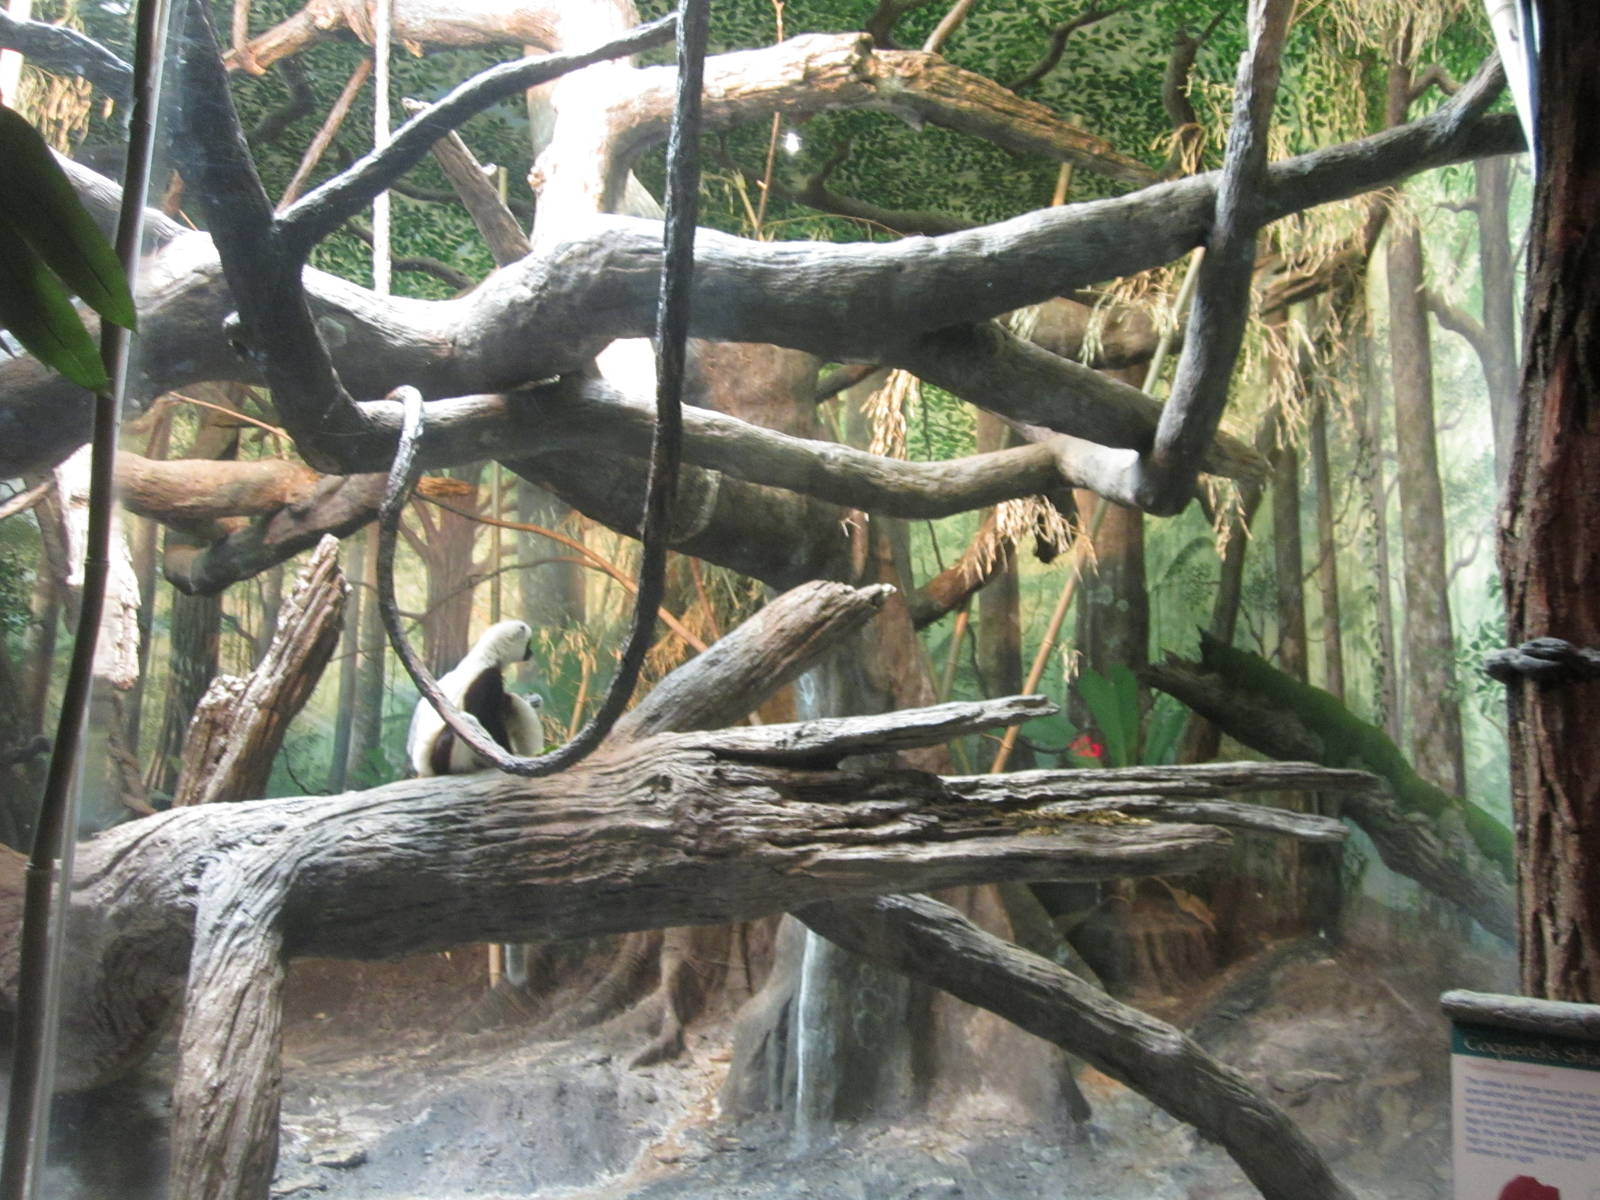 Bronx Zoo Corquels Sifaka Exhibit Zoochat - Year of Clean Water